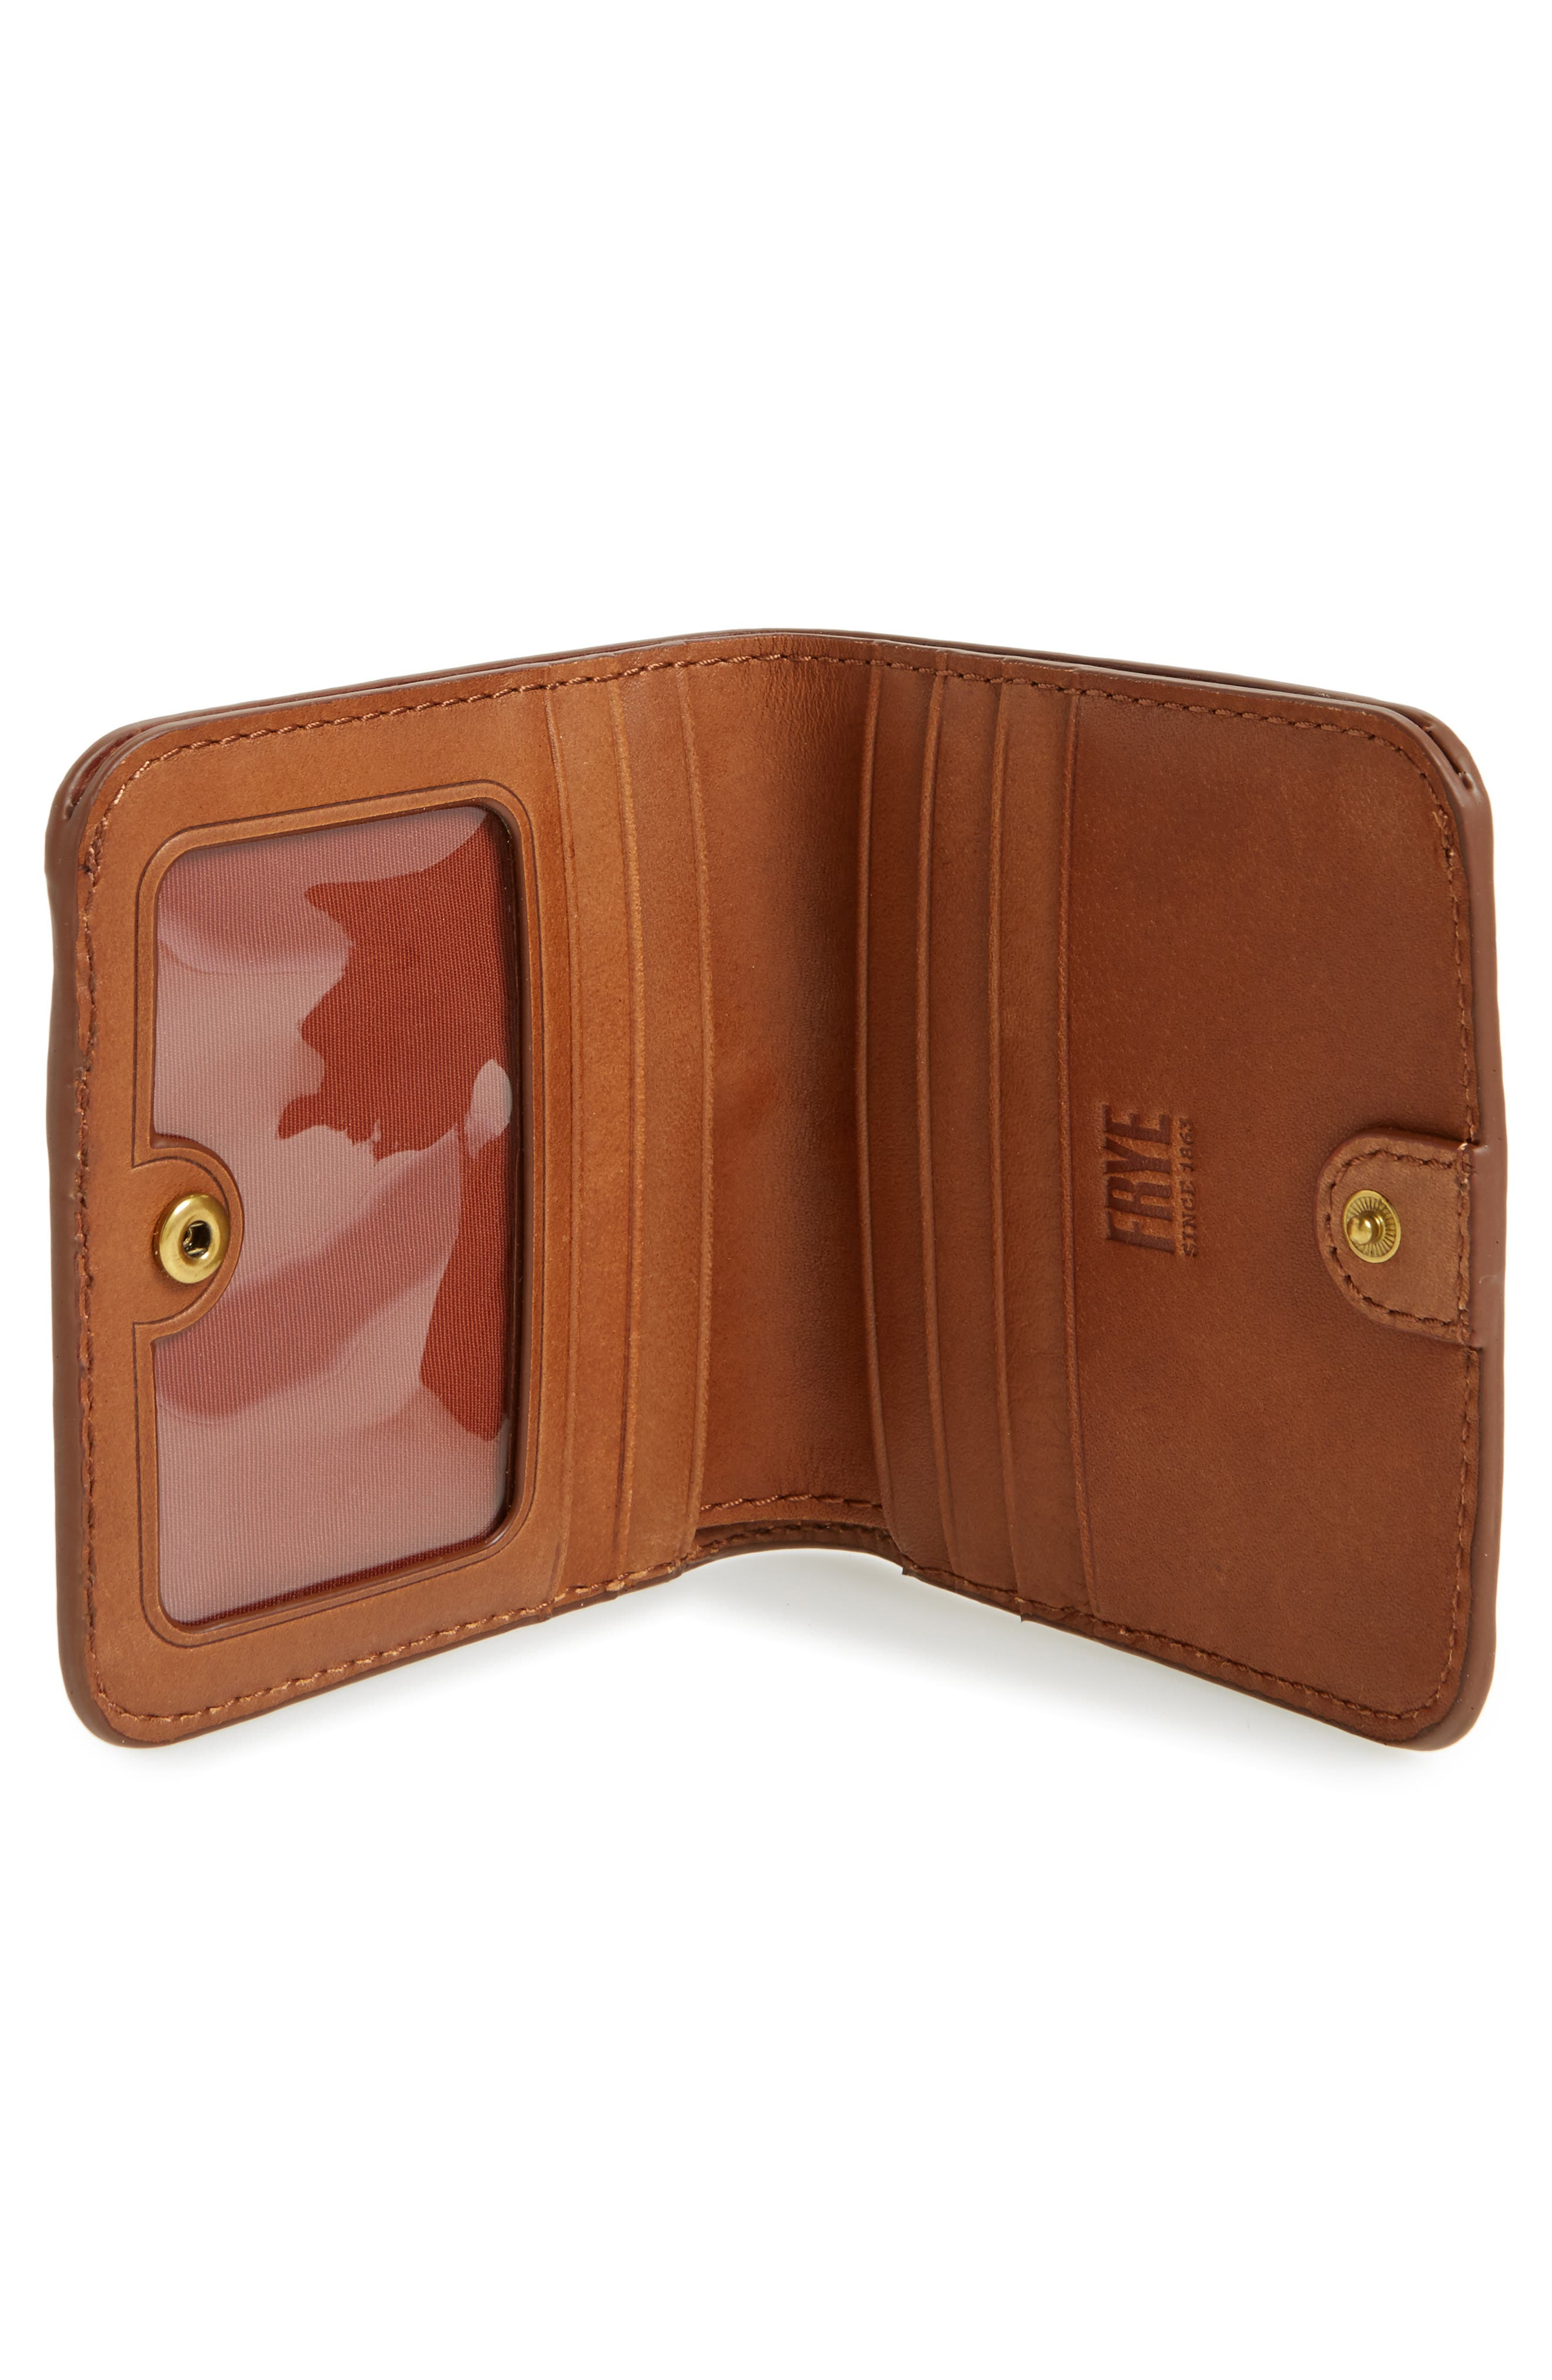 Small Campus Rivet Leather Wallet,                             Alternate thumbnail 2, color,                             Saddle